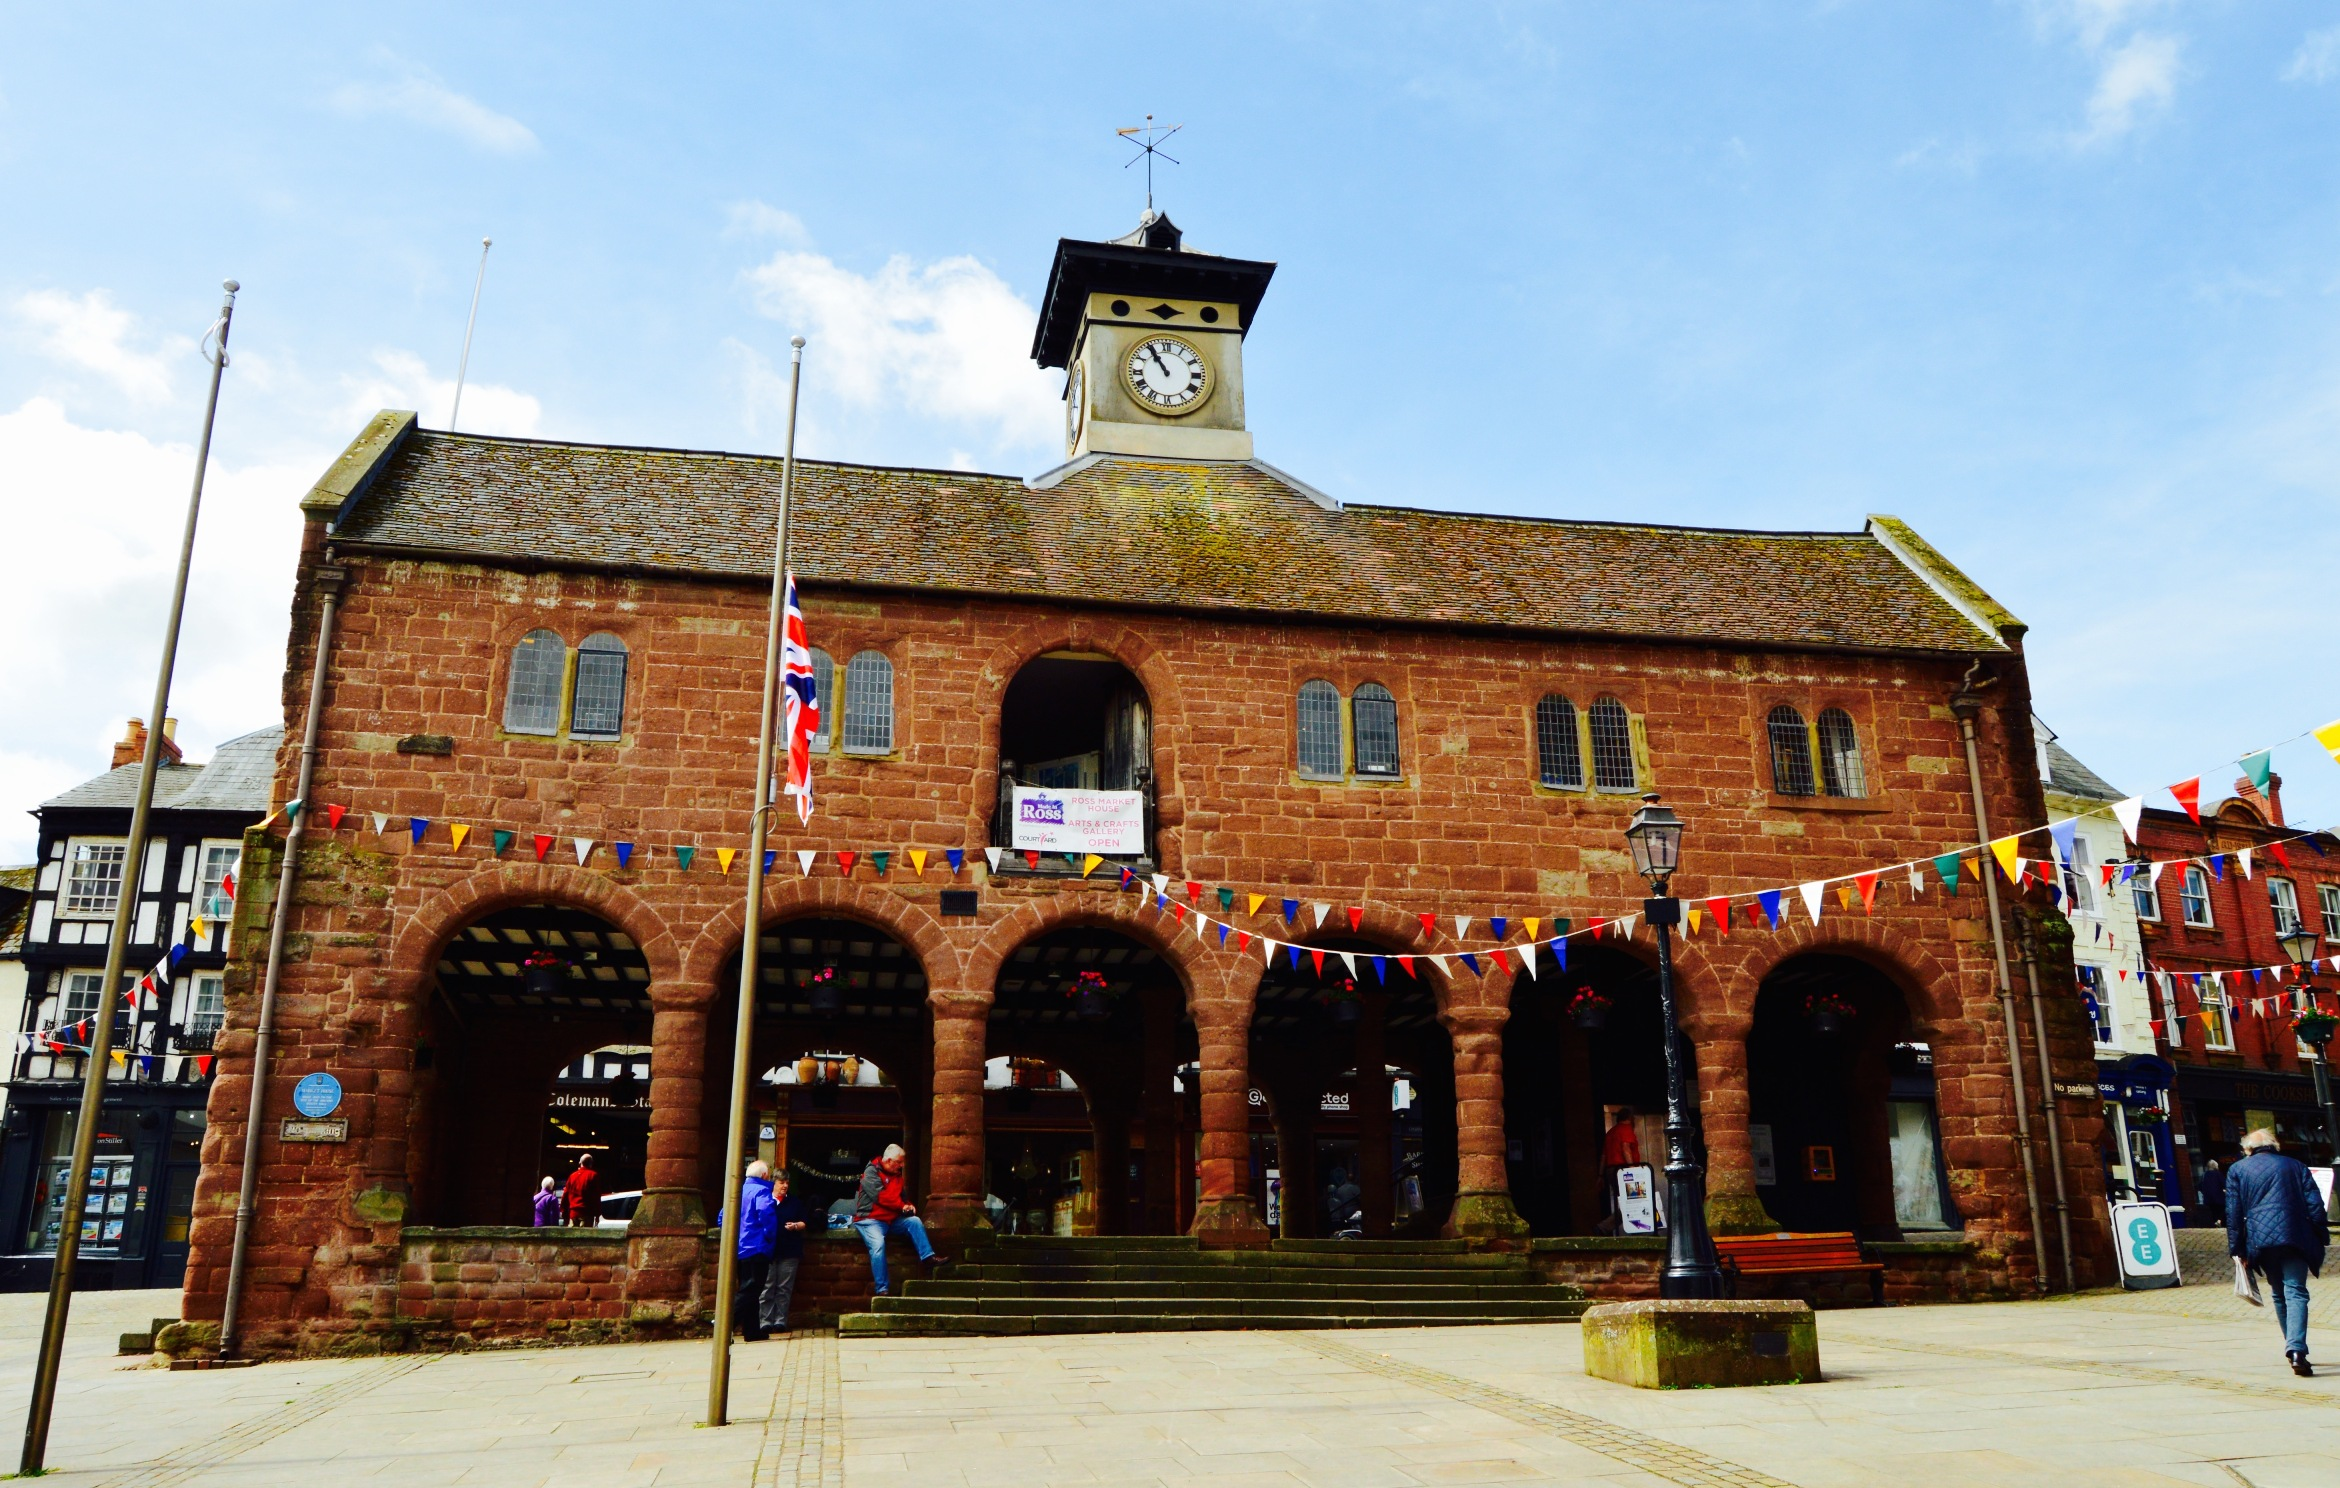 The traditional market house in Ross on Wye